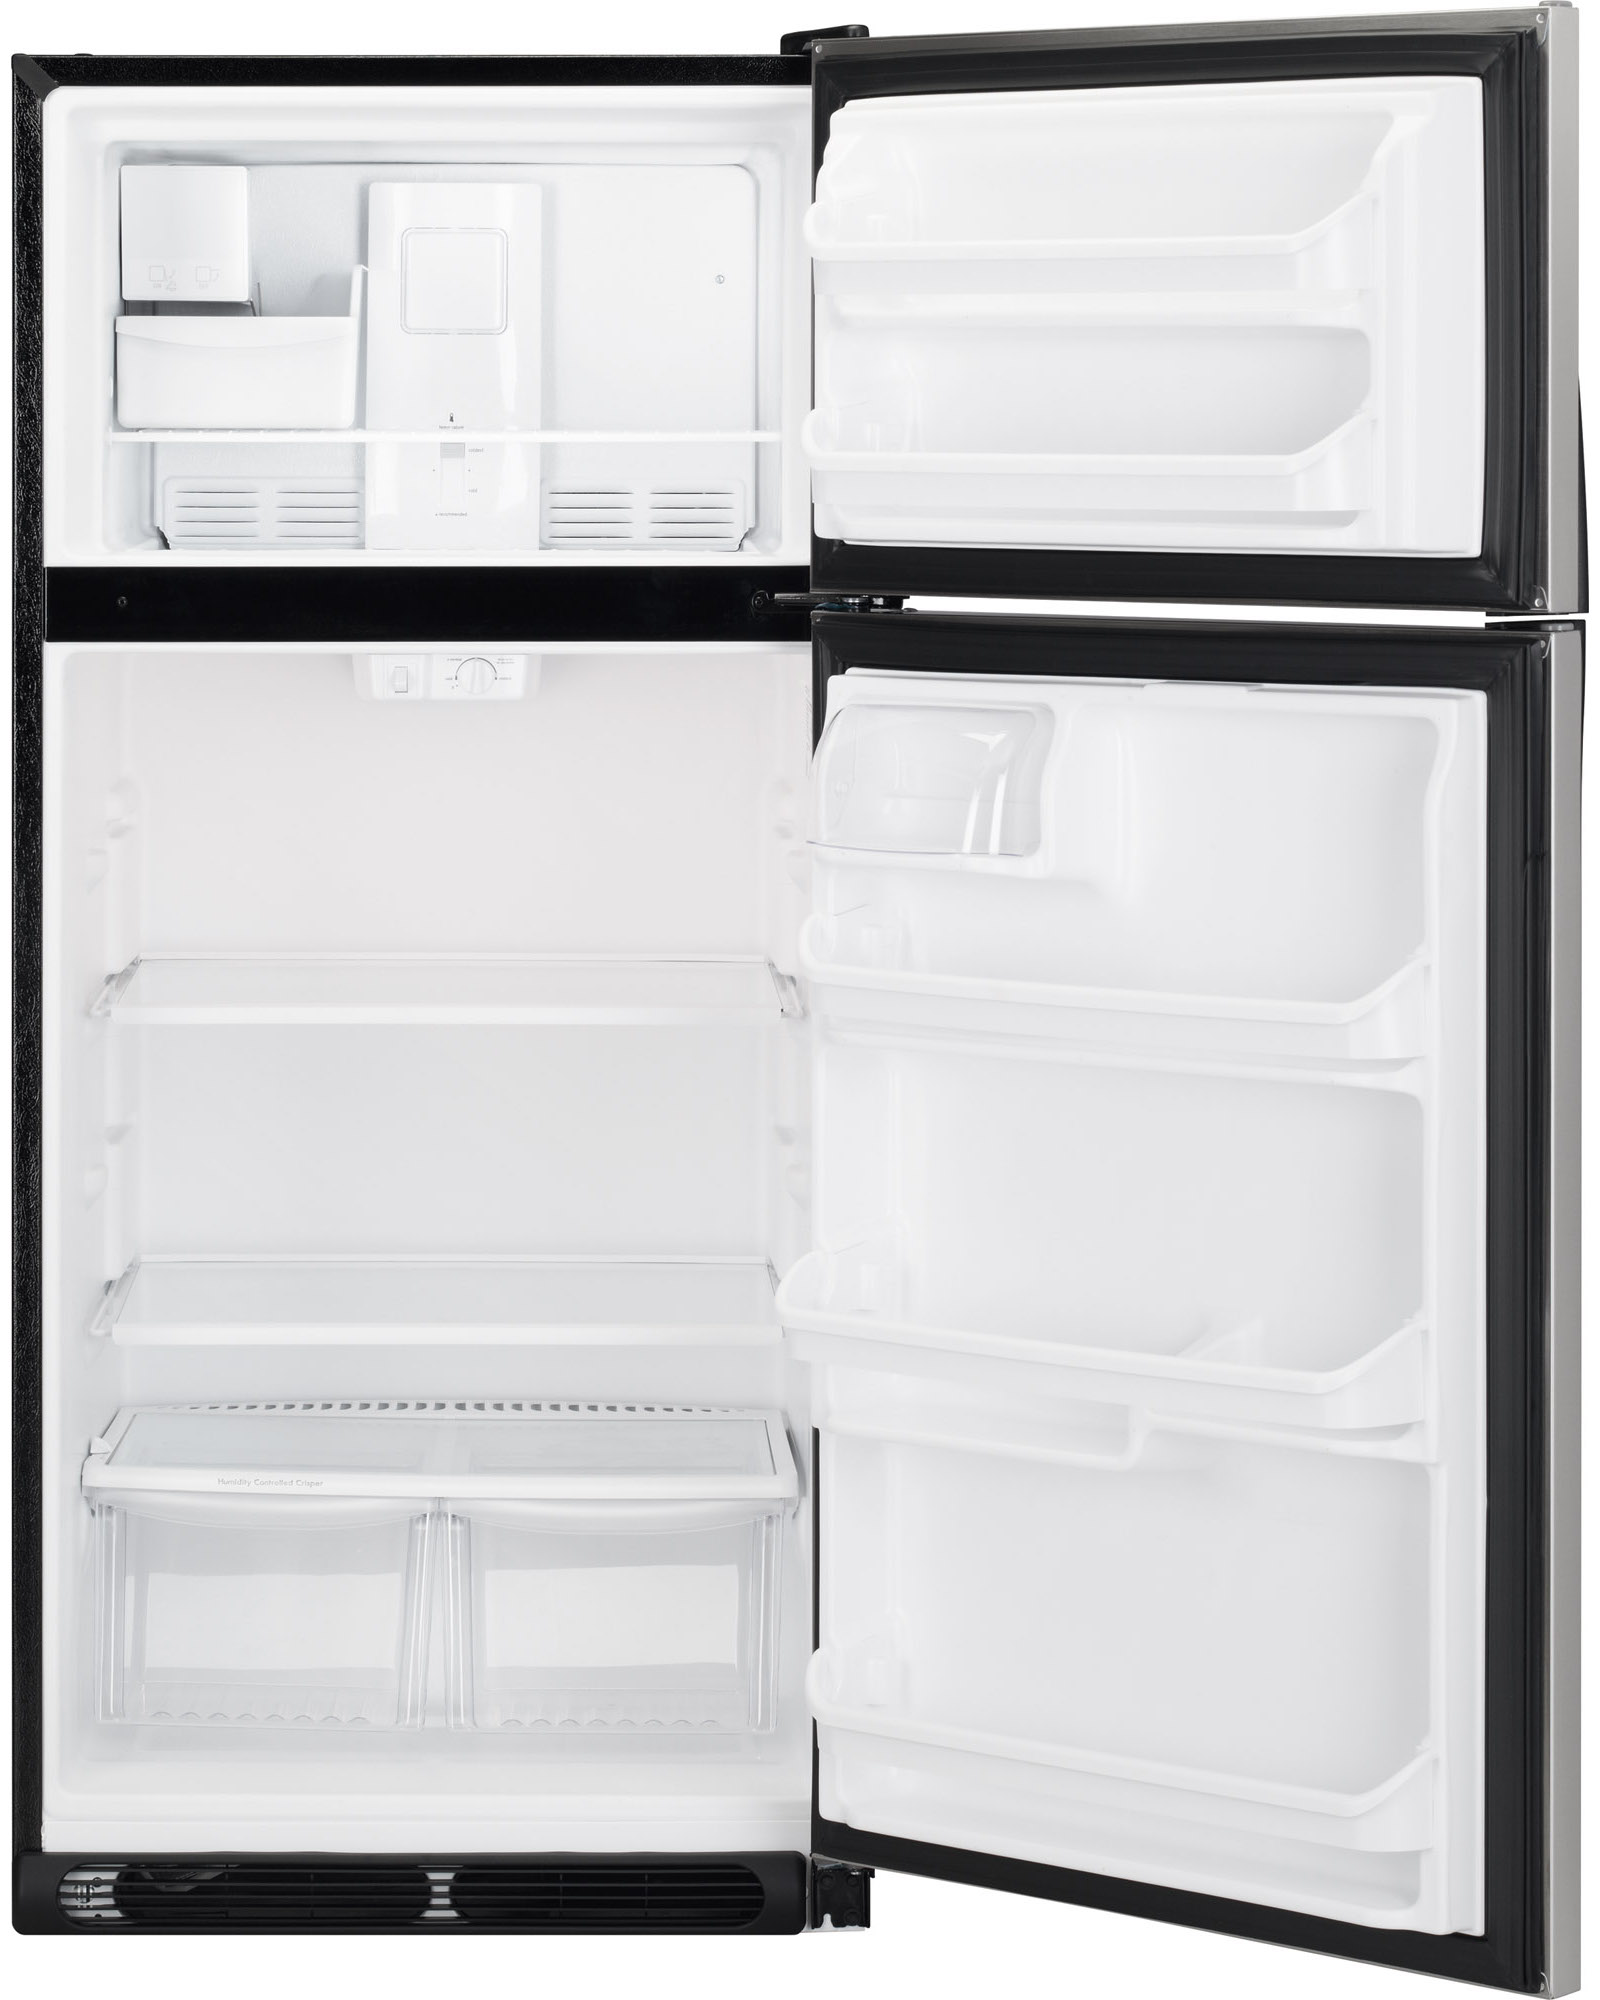 Kenmore 70503 18 cu. ft. Top Freezer Refrigerator - Stainless Steel